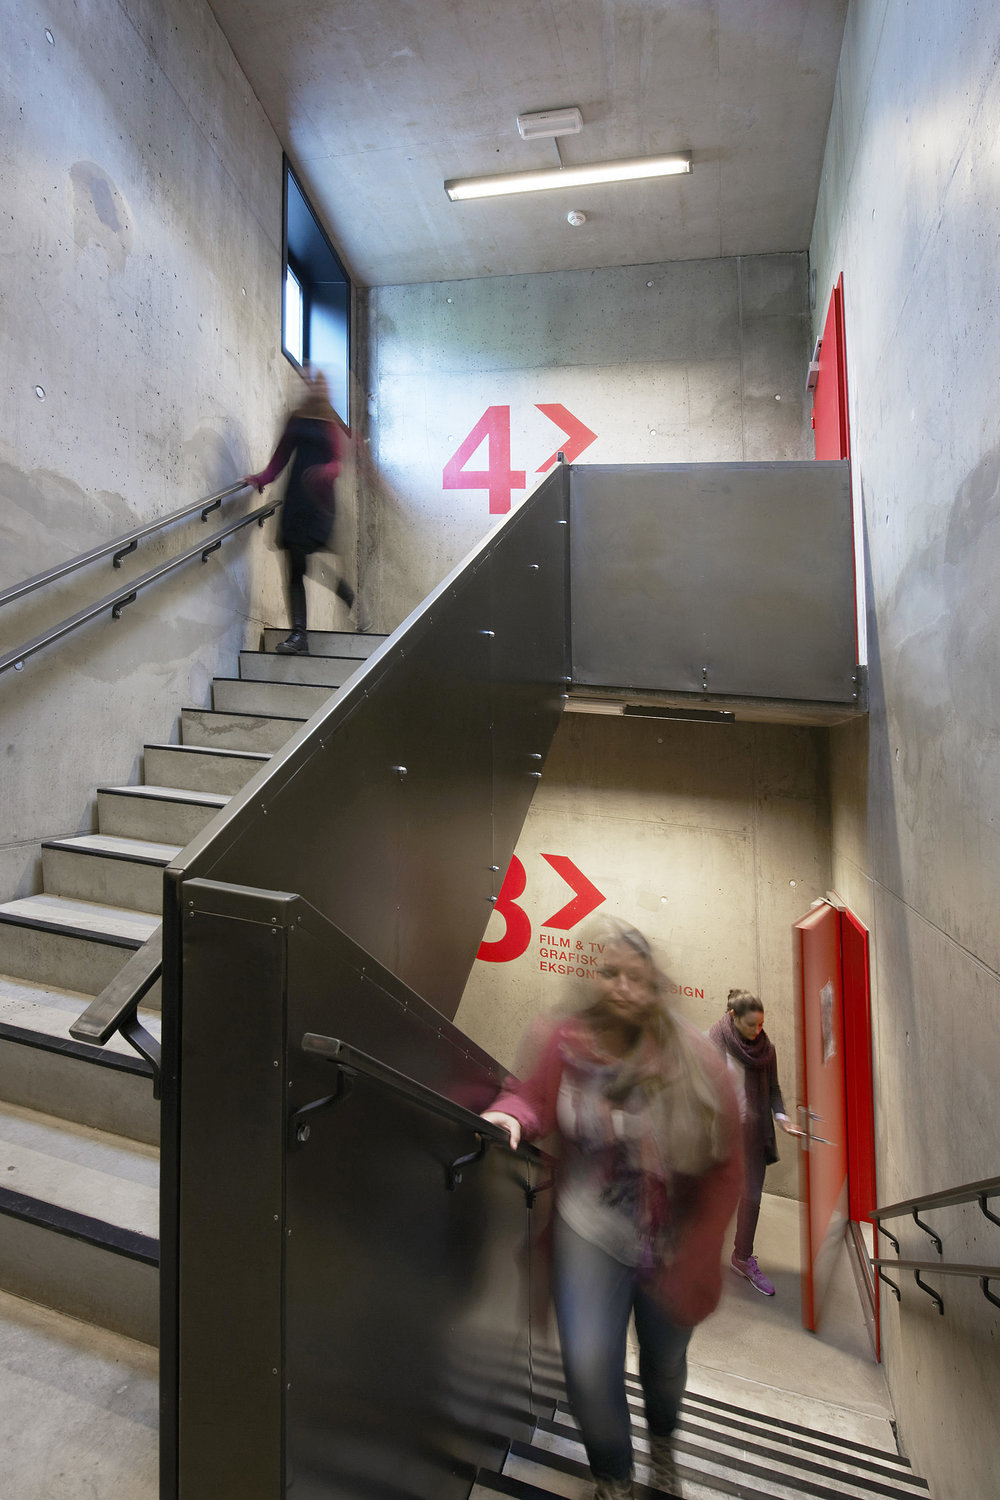 → Hand painted signage of floor numbers in the stairwell